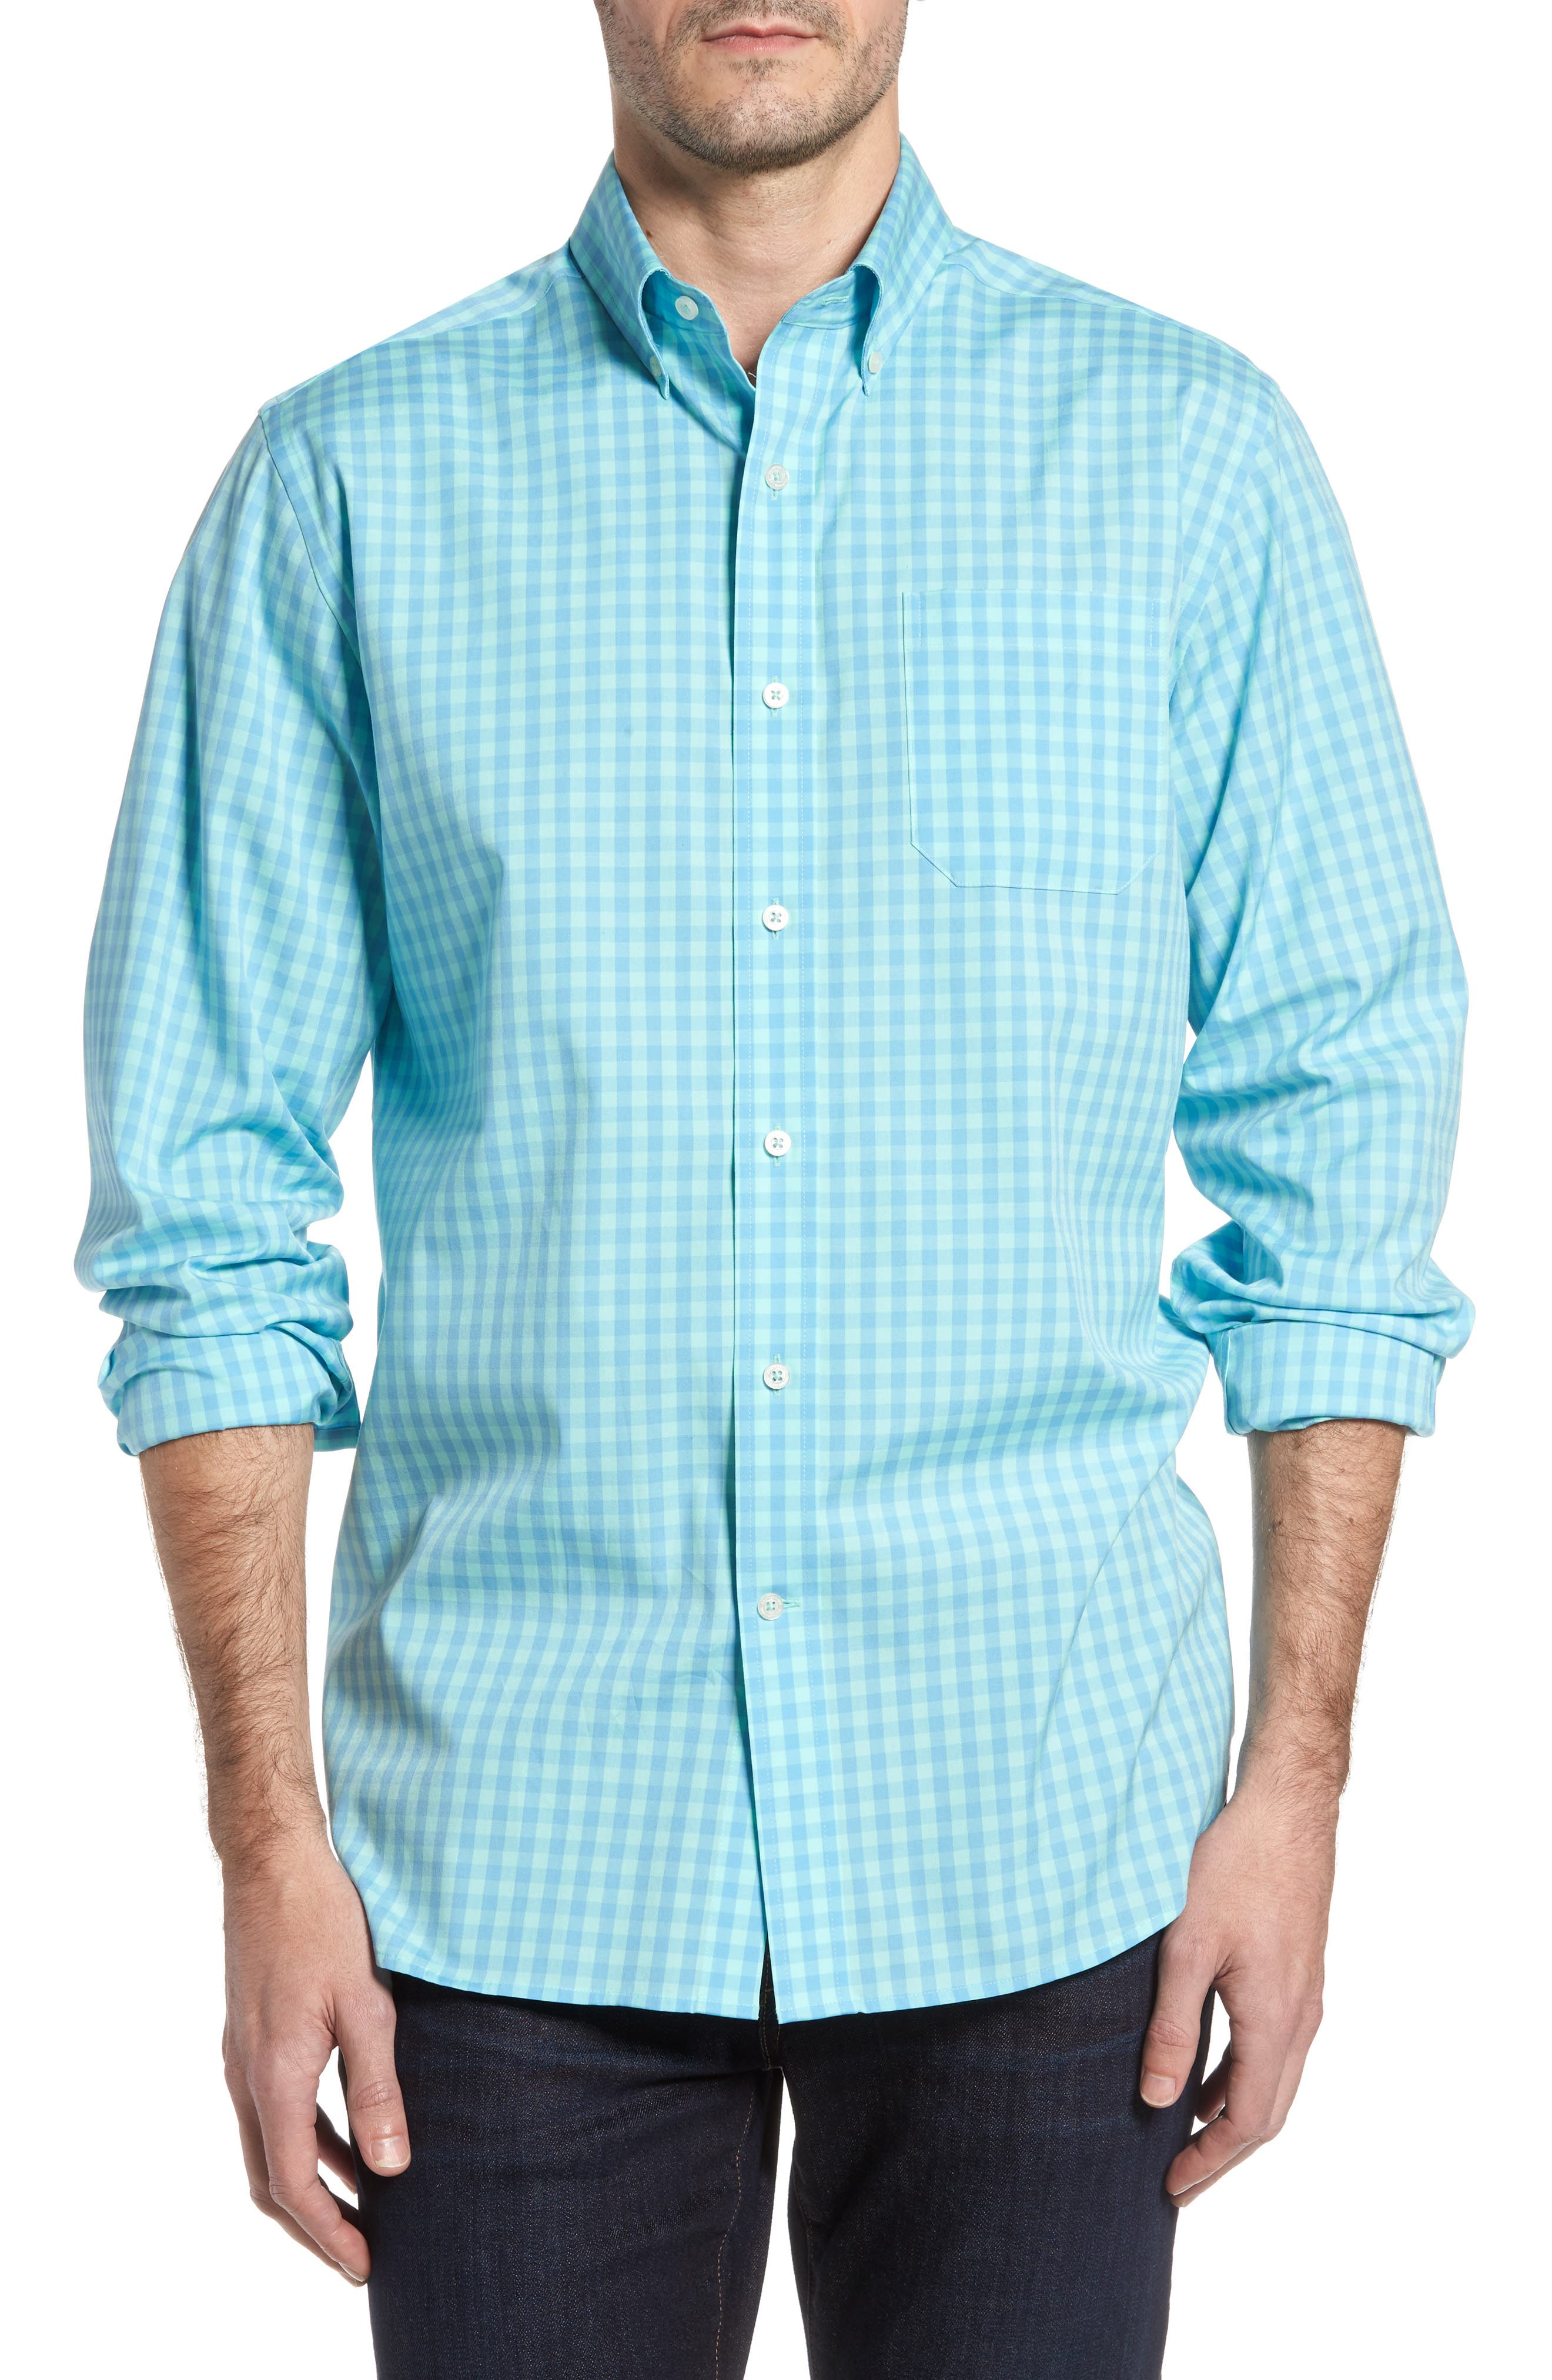 Main Image - Southern Tide Getaway Gingham Classic Fit Sport Shirt